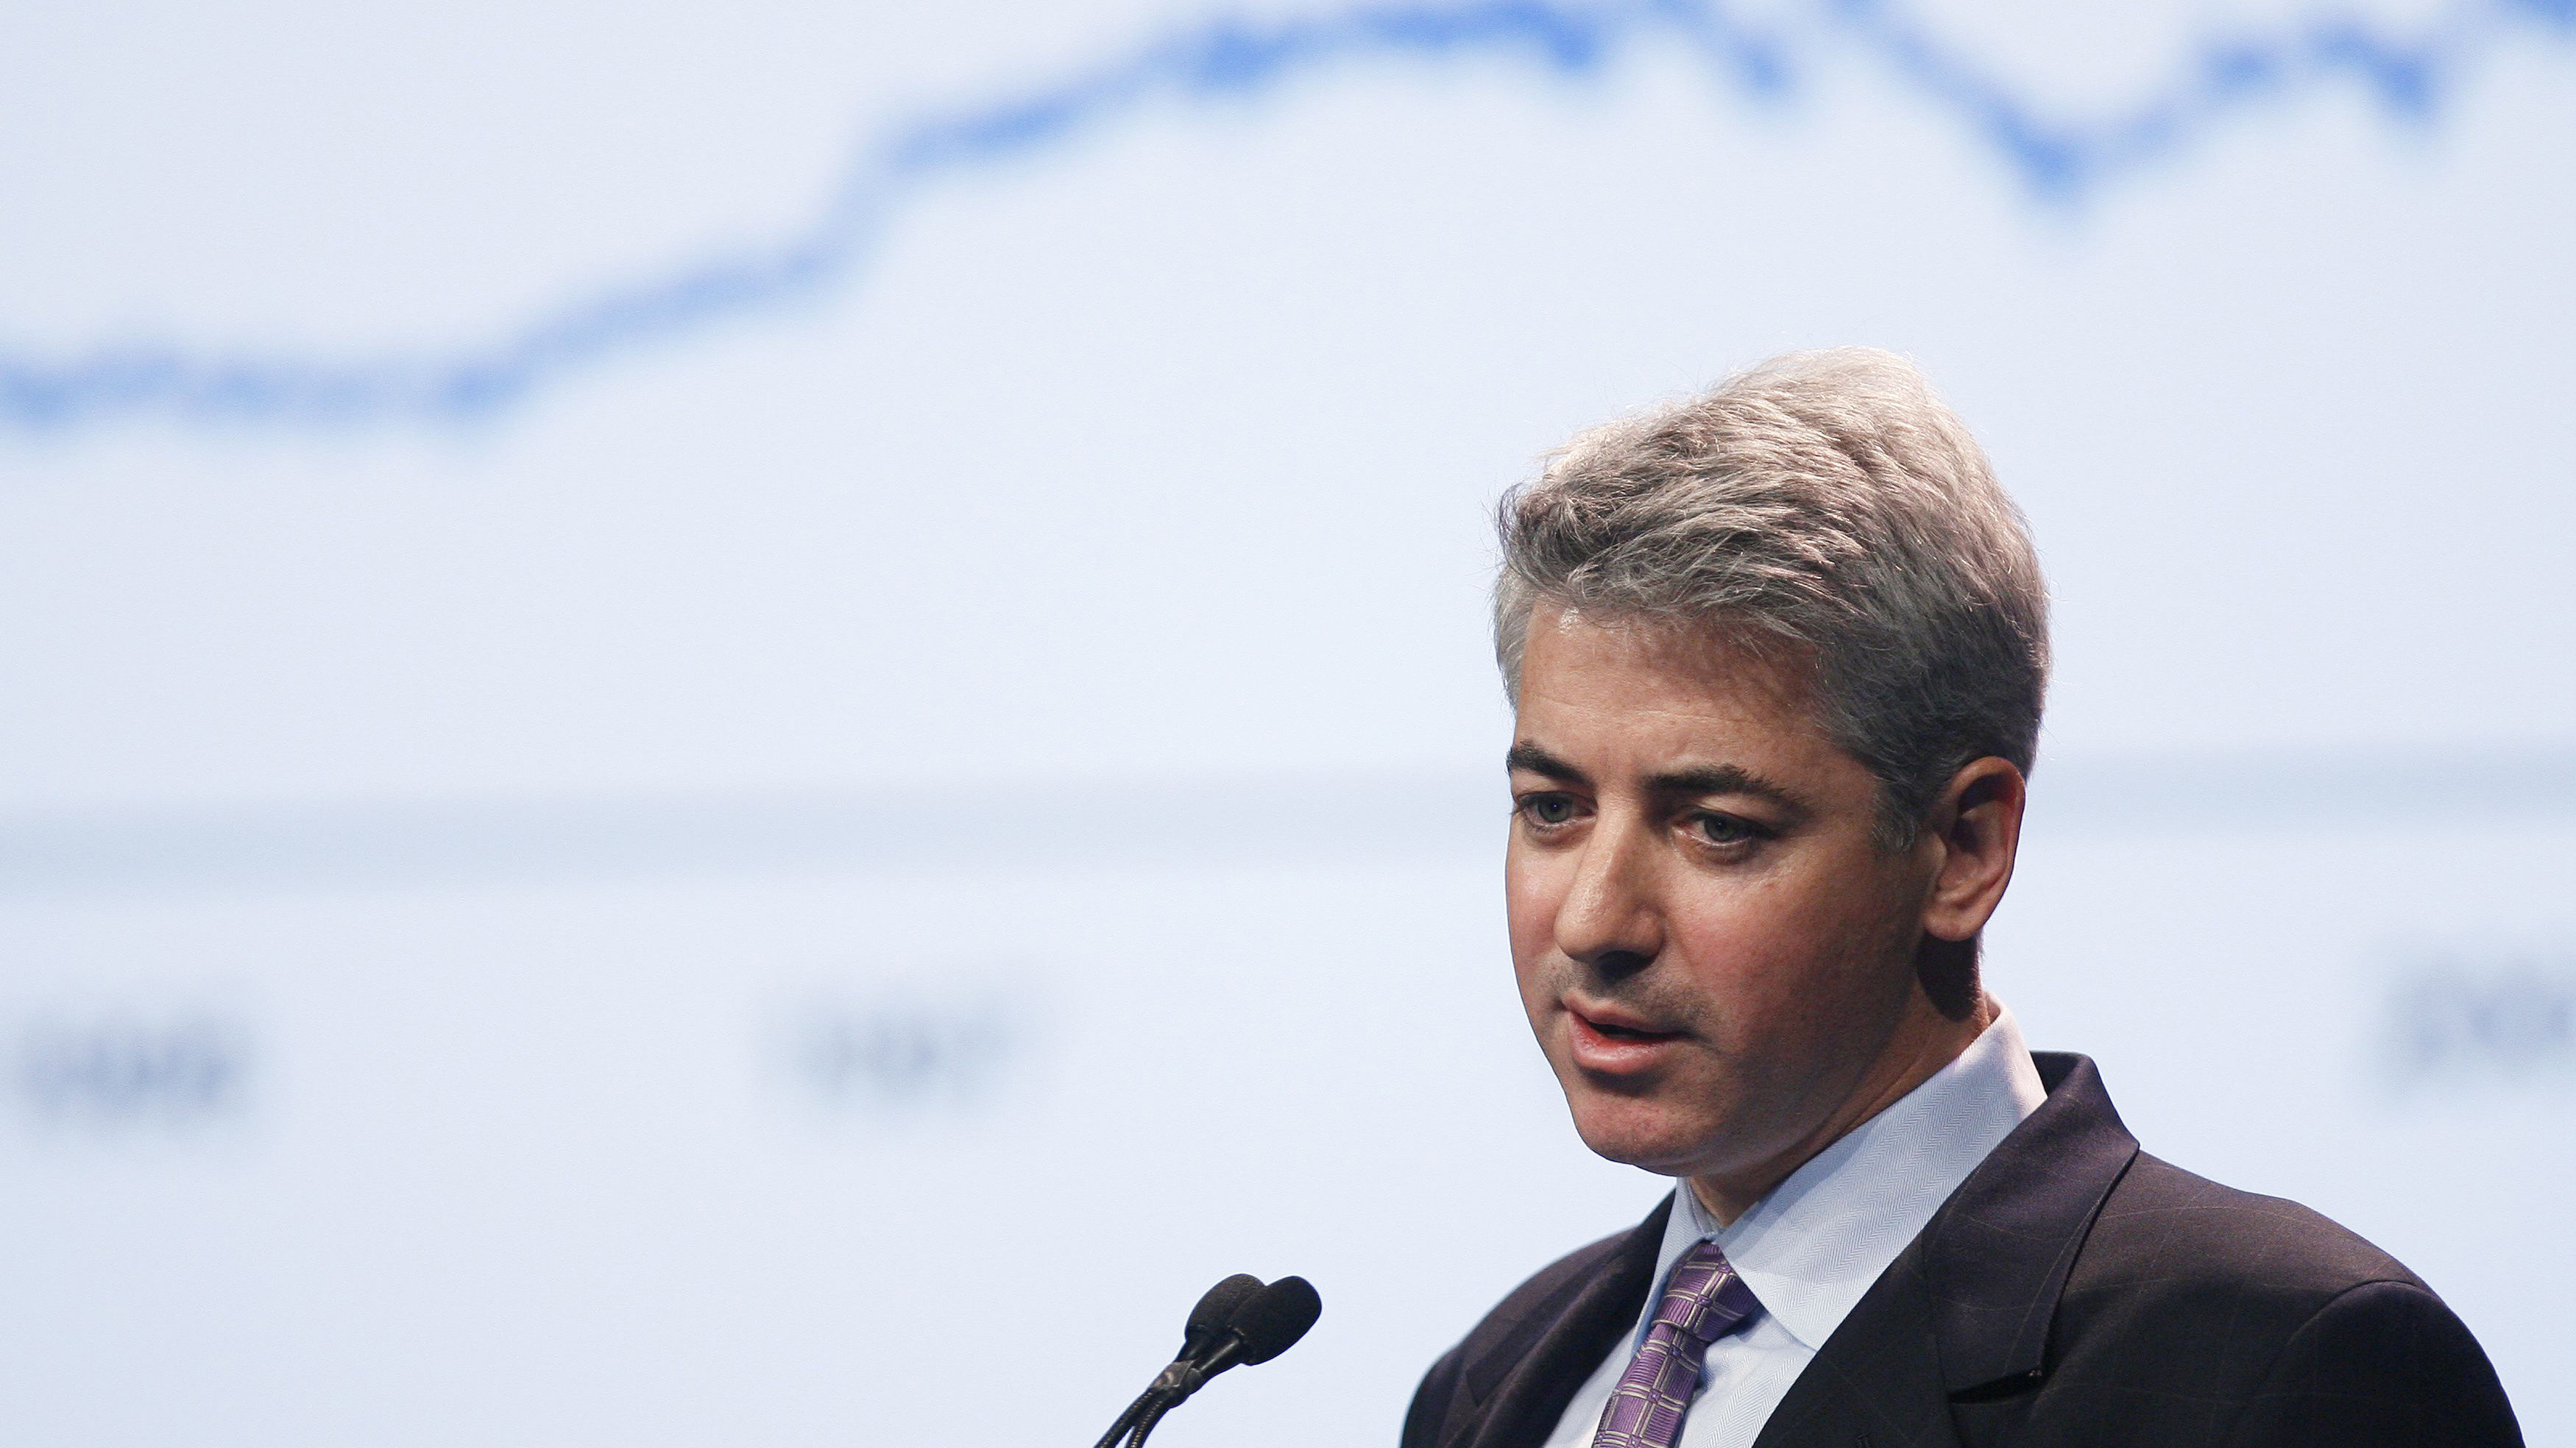 Bill Ackman of Pershing Square Capital Management speaks during the Ira W. Sohn investment research conference in New York May 27, 2009. REUTERS/Lucas Jackson (UNITED STATES BUSINESS)